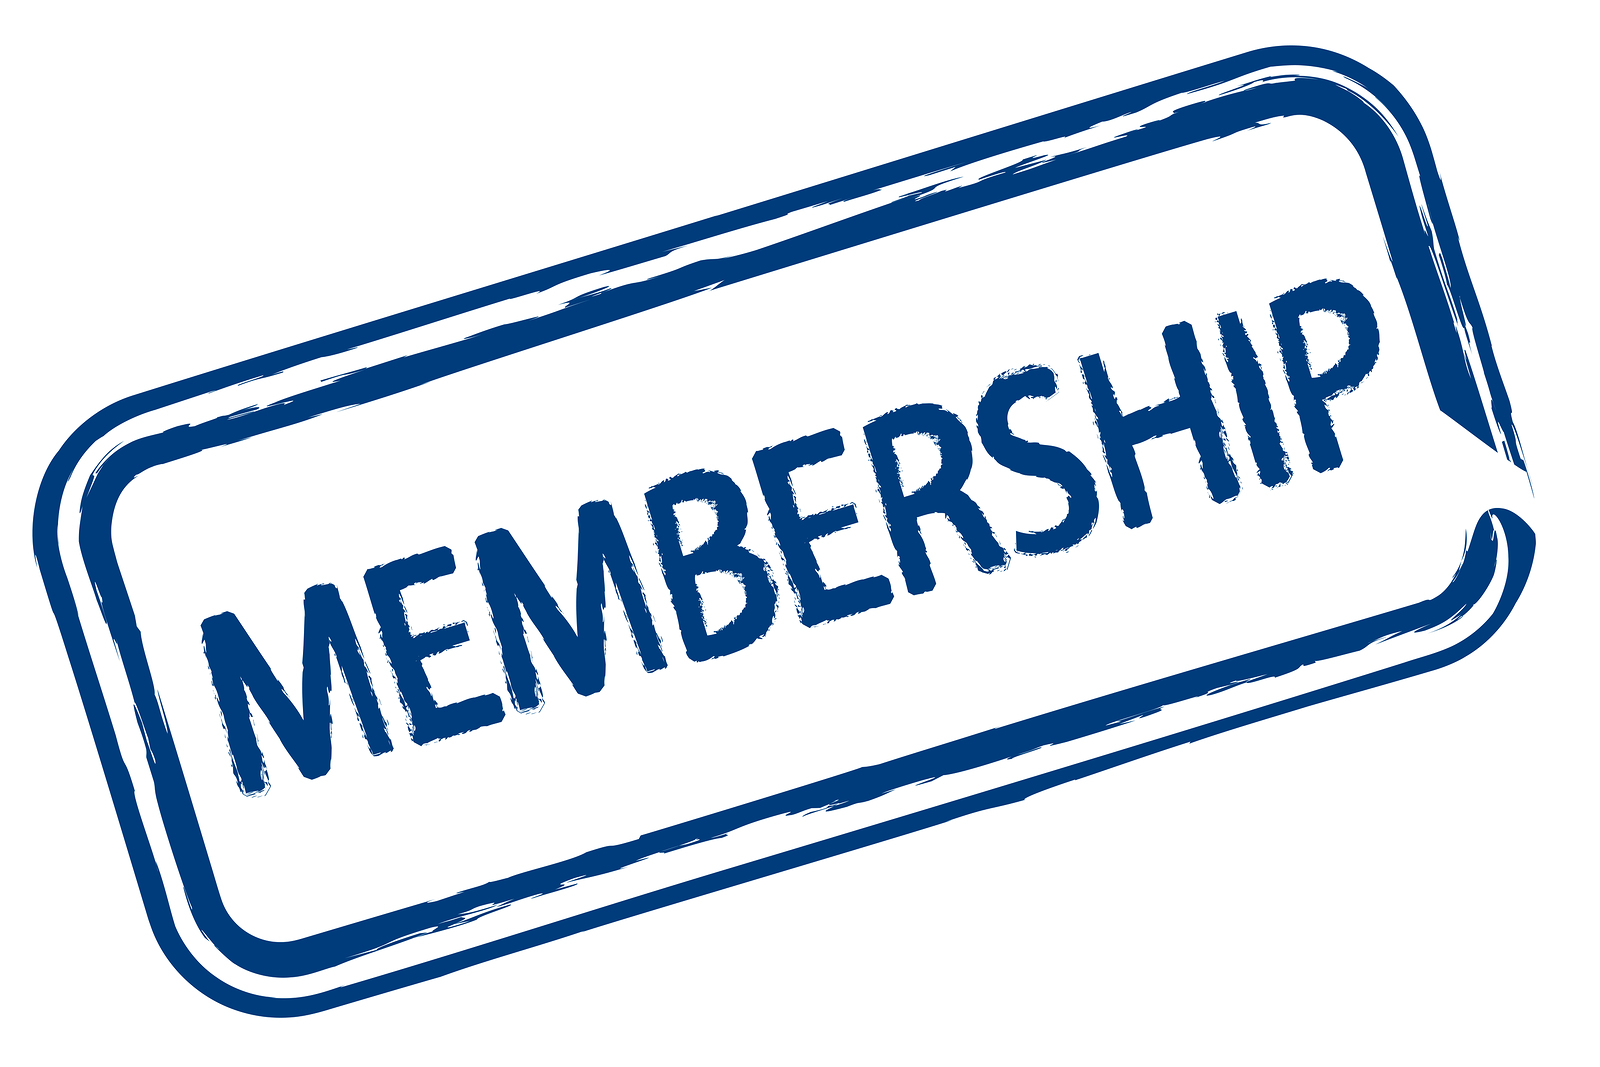 If you would like to become a UPCC member, please send an email to Ray Kraft (raykraft@gmail.com) and request being added to our newsletters and community information mailing list. UPCC […]